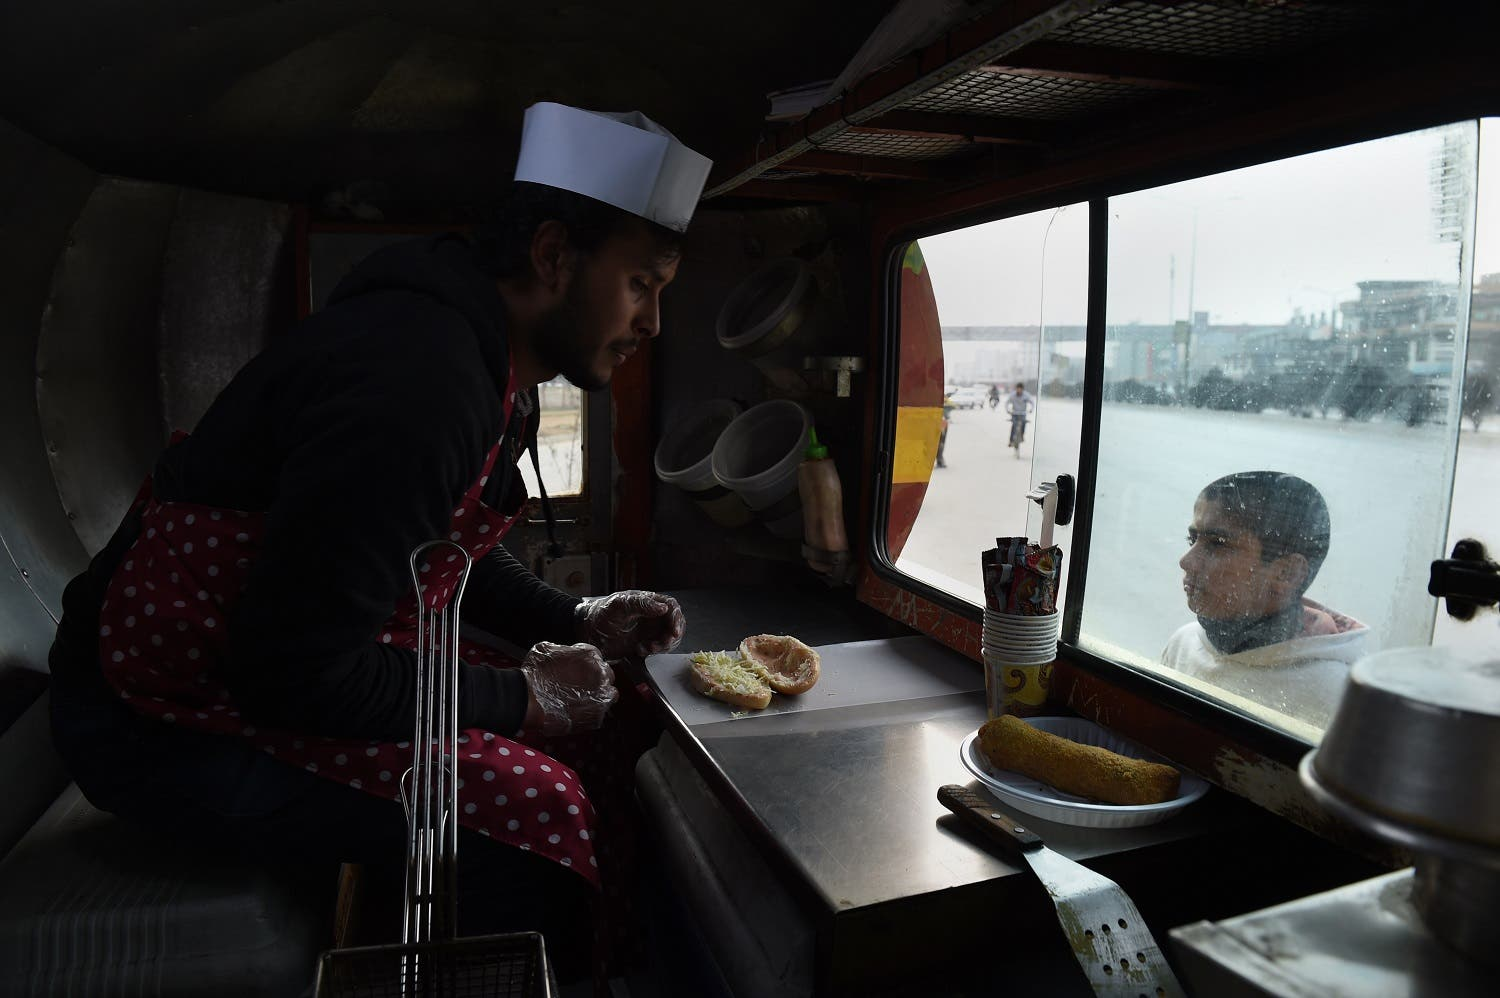 It took little time for the city's emerging middle class to embrace the novelty of canteens-on-wheels serving Western fast foods around town. (AFP)